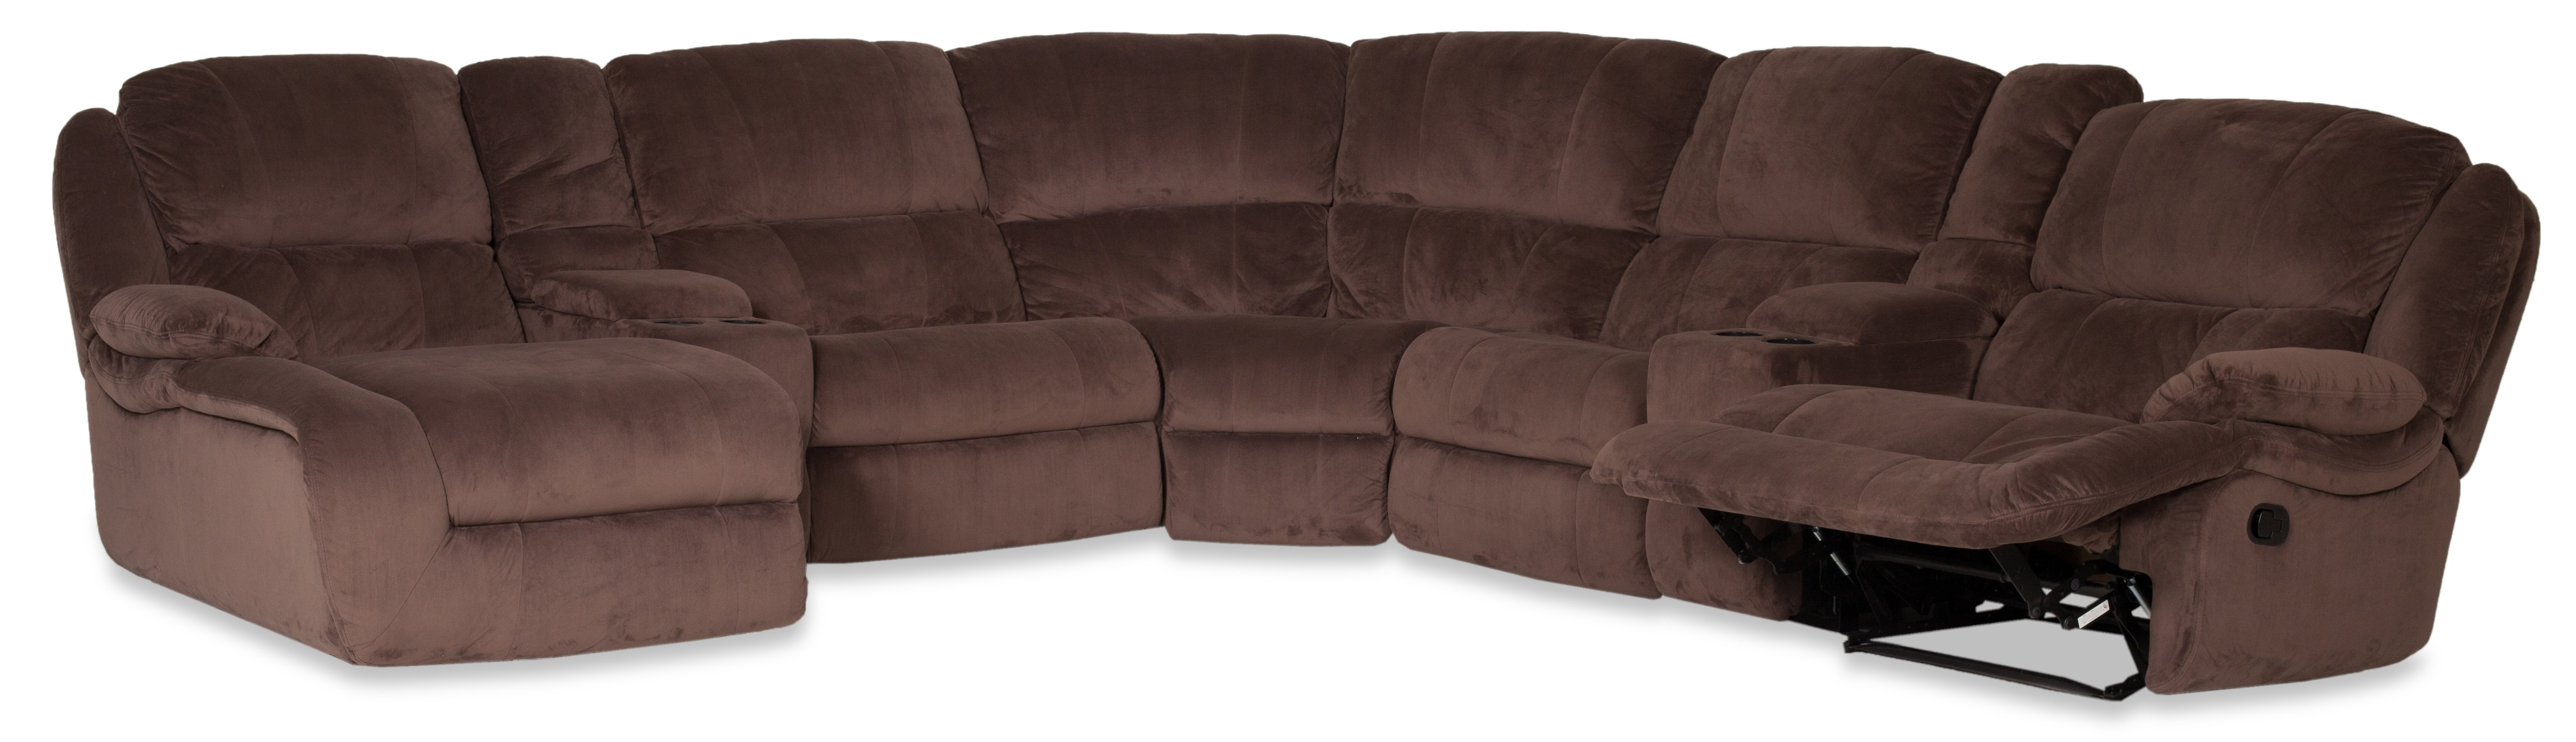 In Karen 3 Piece Sectionals (View 9 of 20)